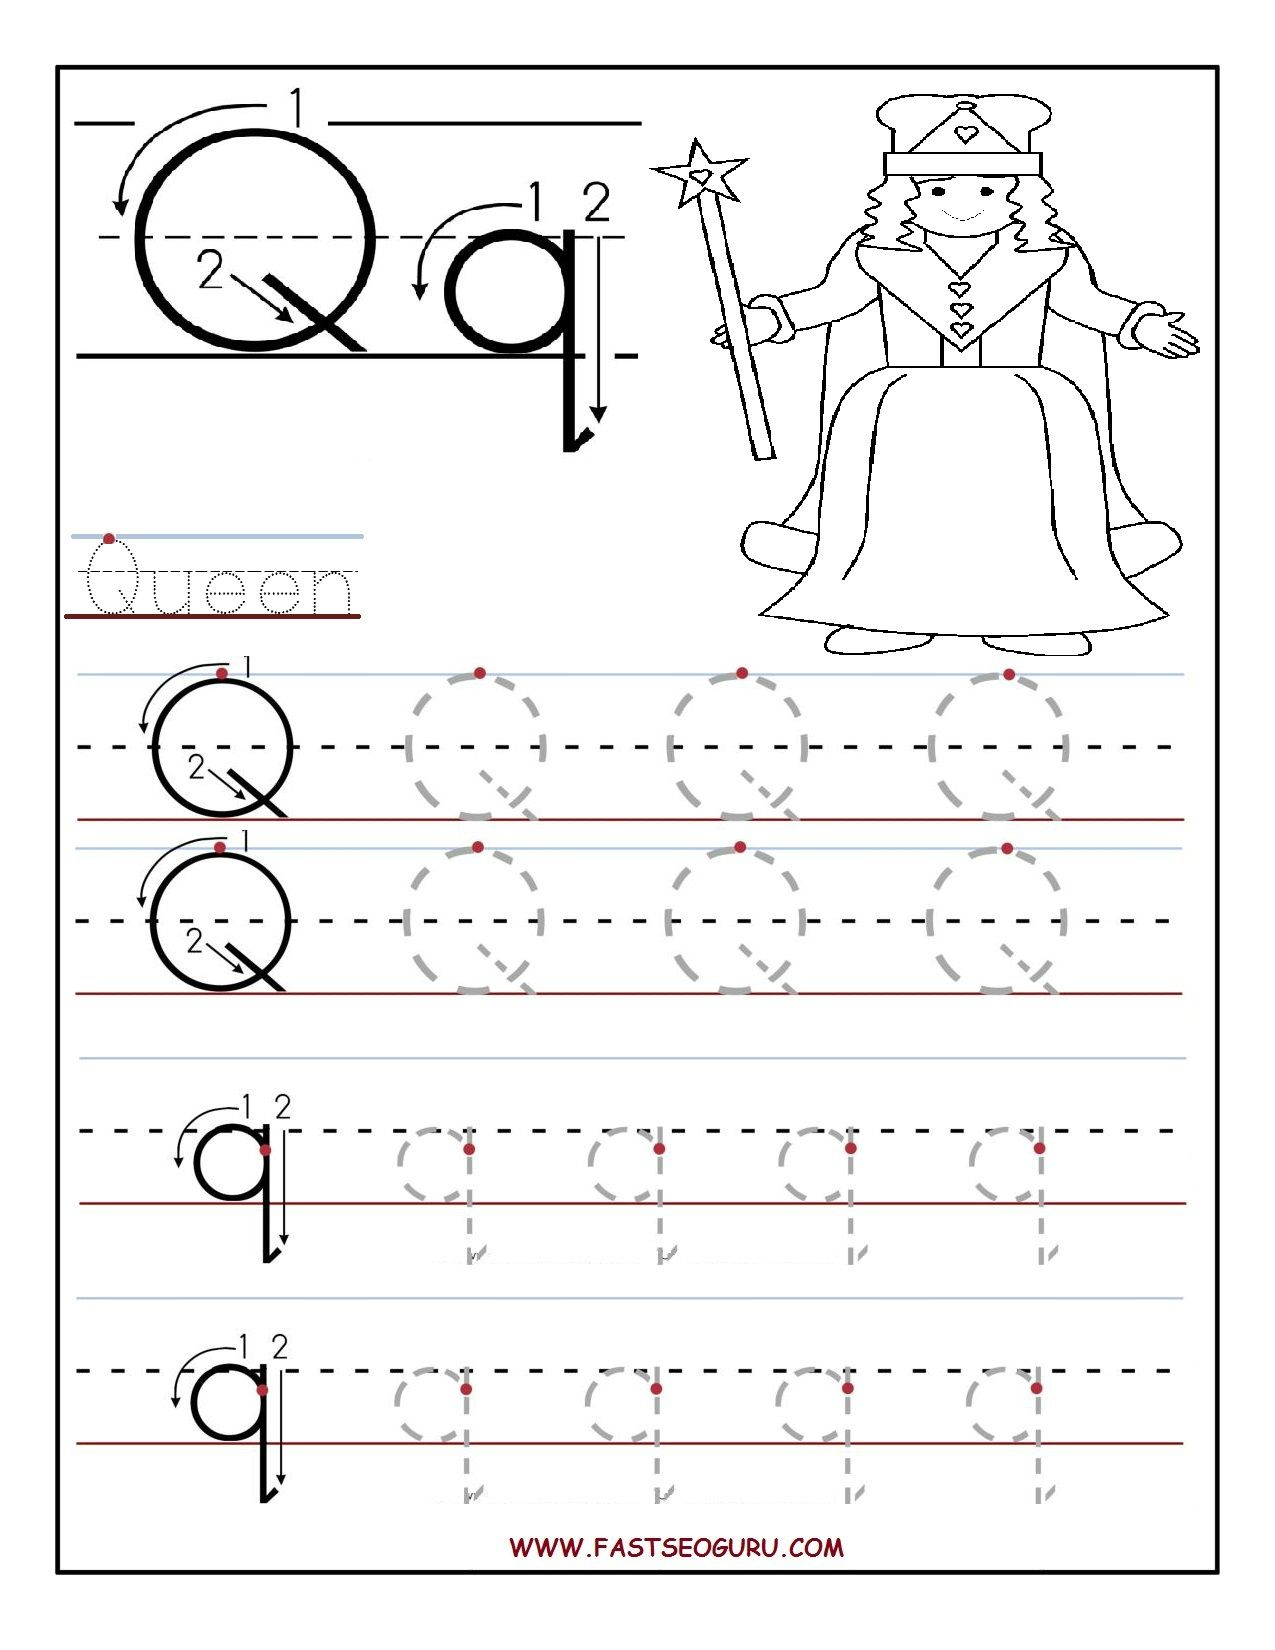 worksheet Letter Q Worksheet letter q tracing worksheets for preschool google search search